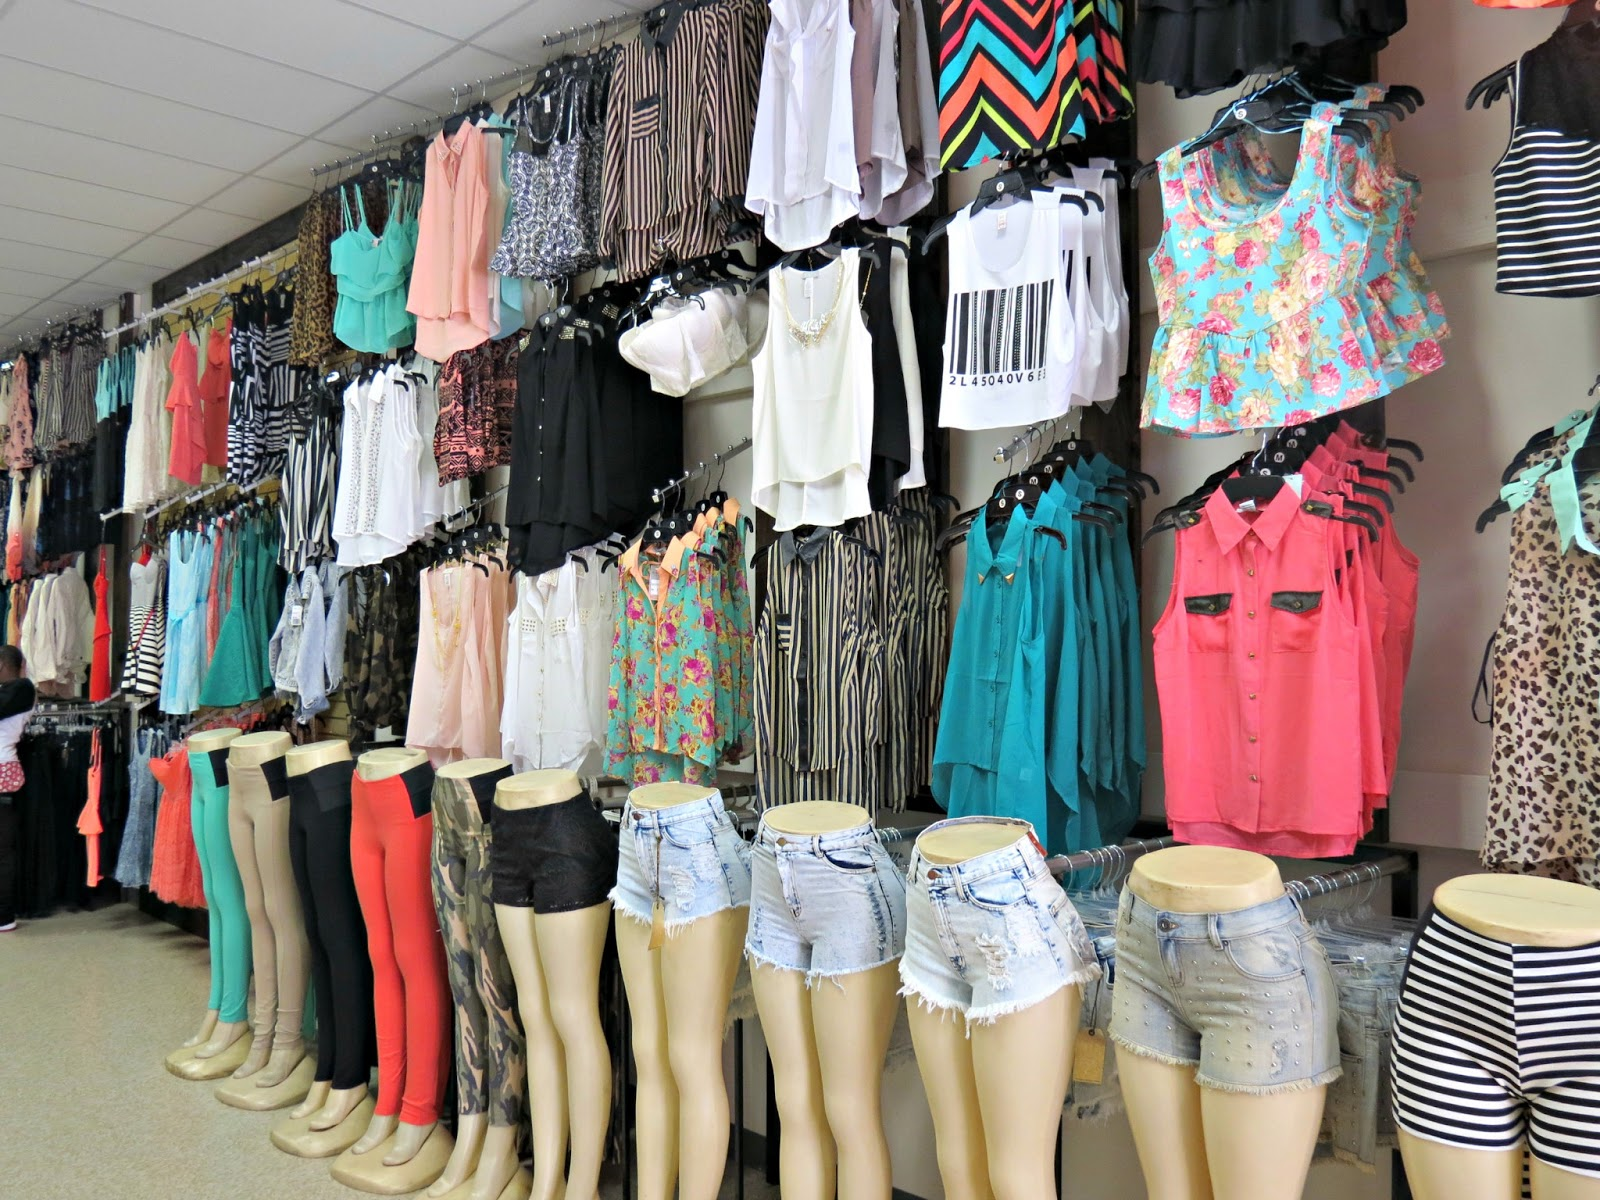 The Santee Alley: Women's Clothing Store Forever Fashion ...